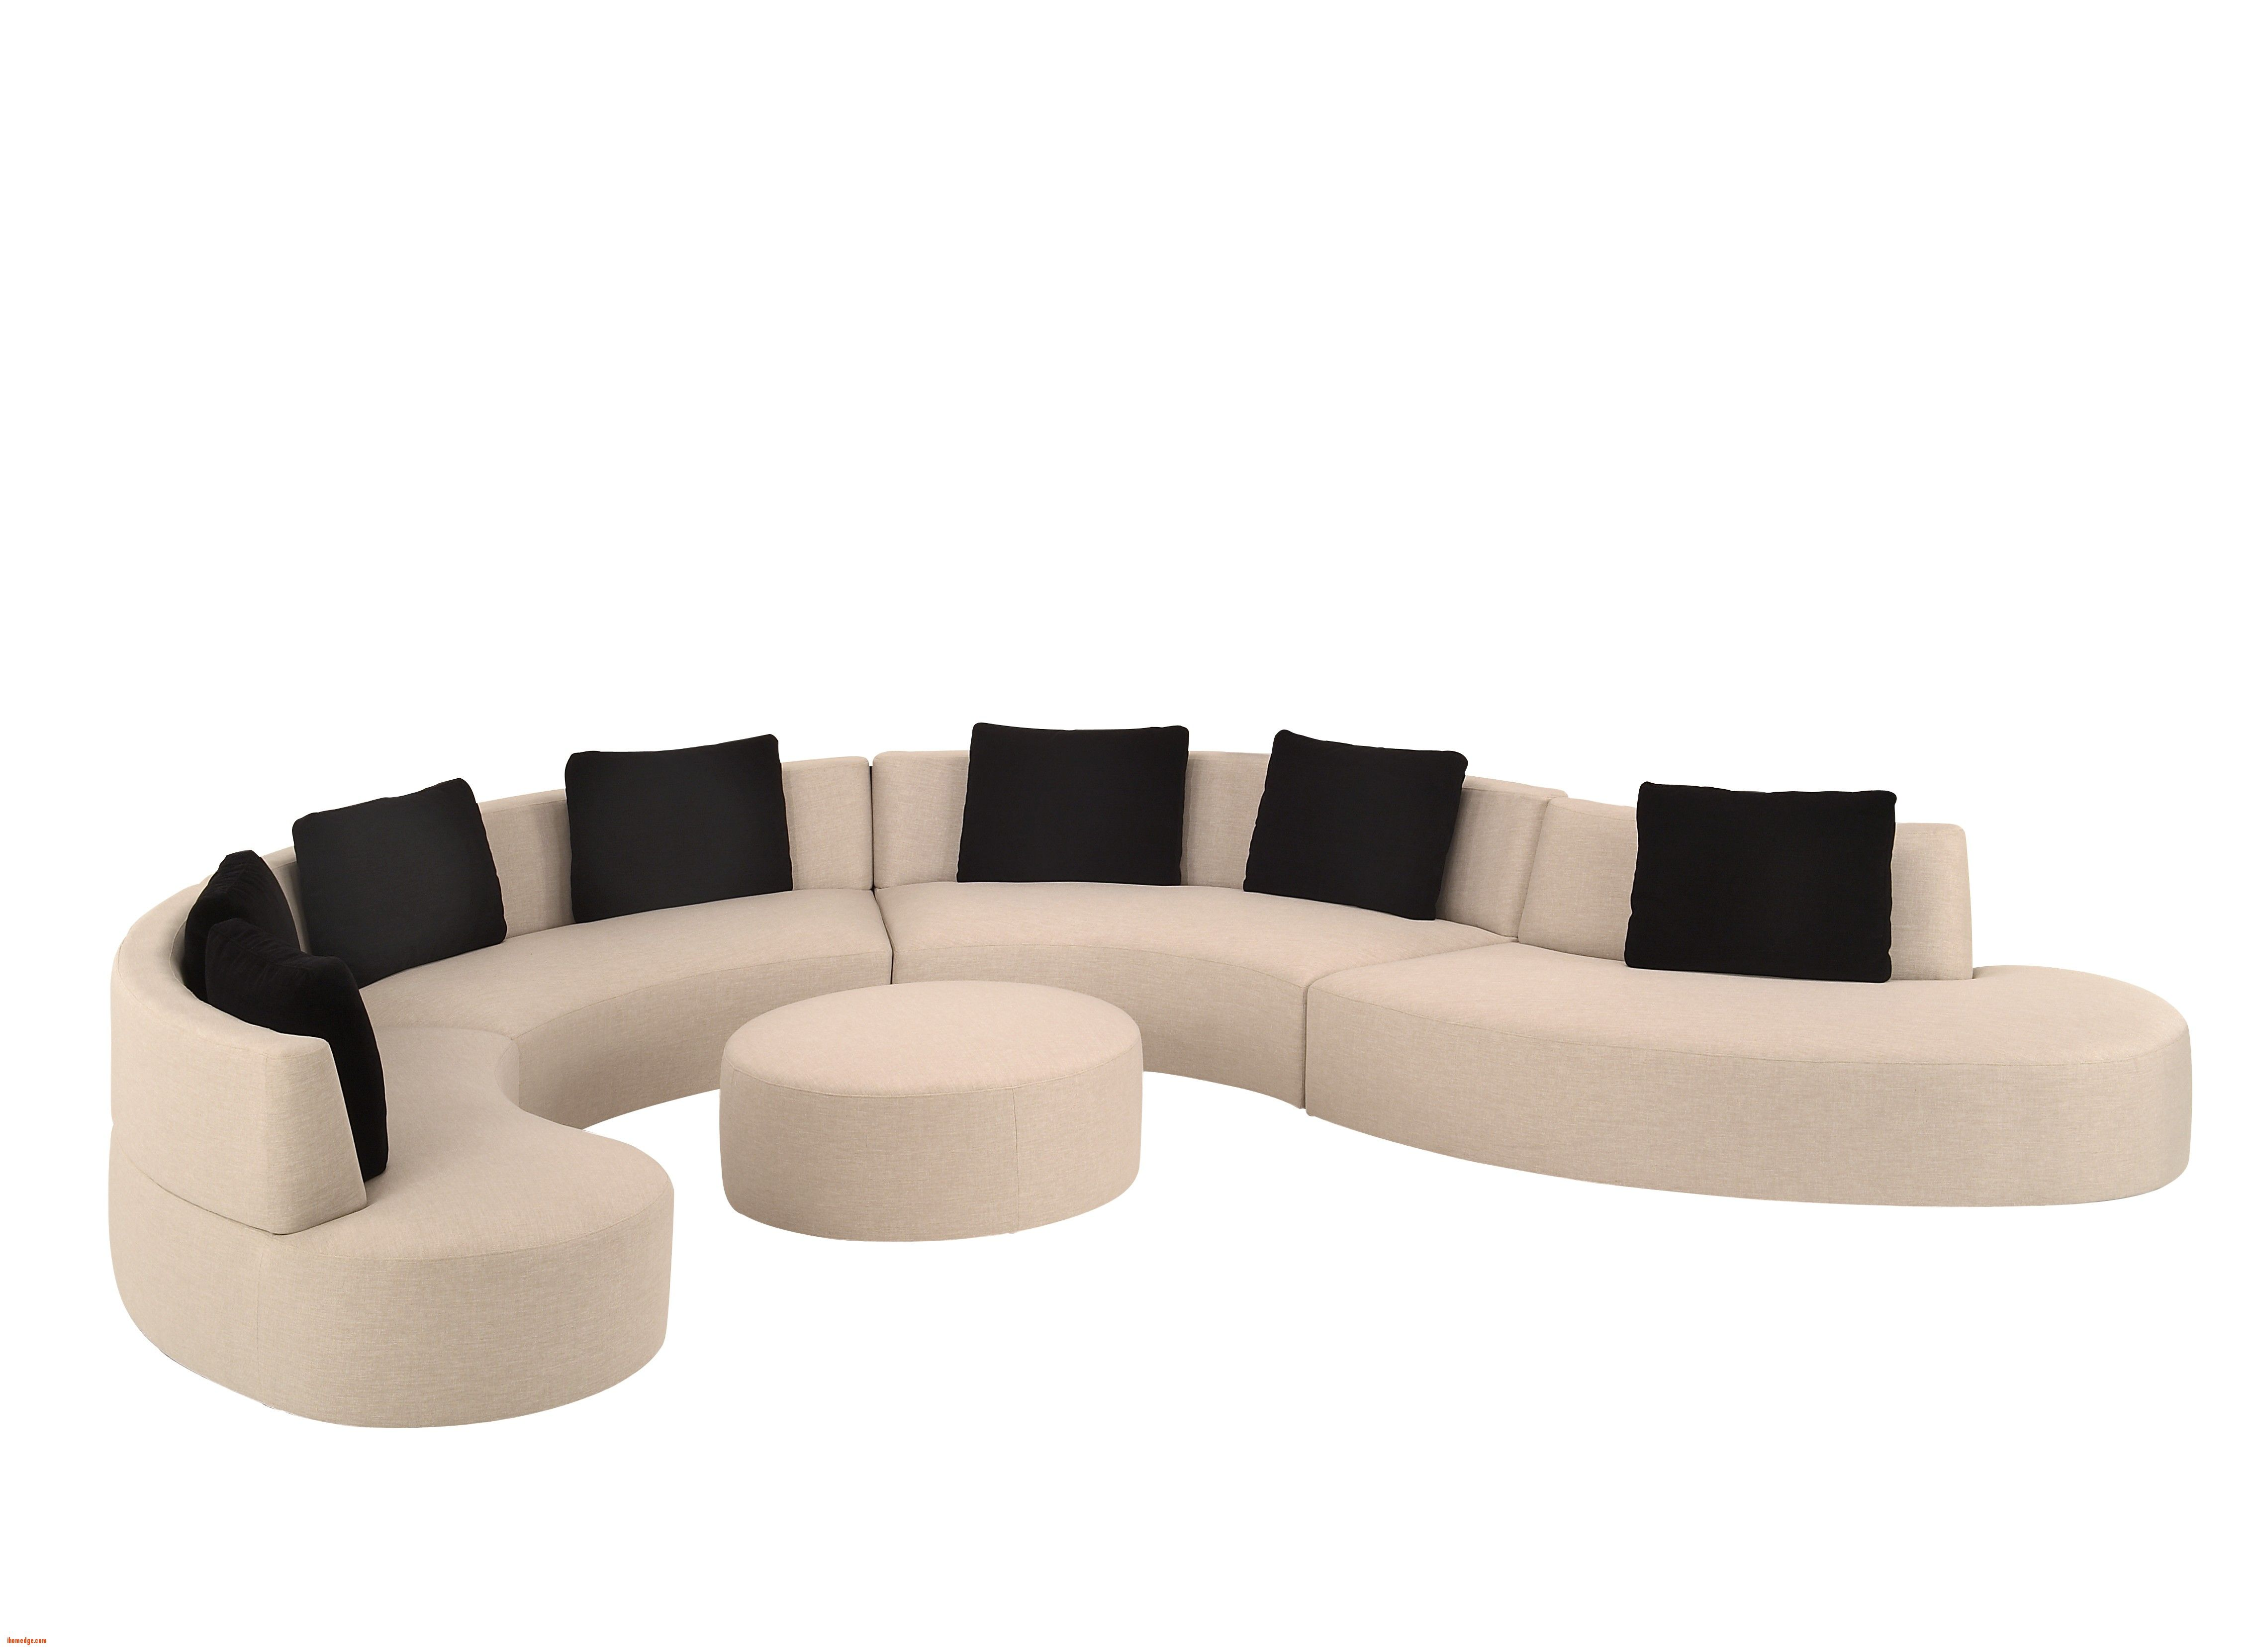 material or prime back sofas bench online difference styles definition settee divan couches industries couch sofa lawson fabric backless broyhill lee shapes fancy top bridgewater architecture